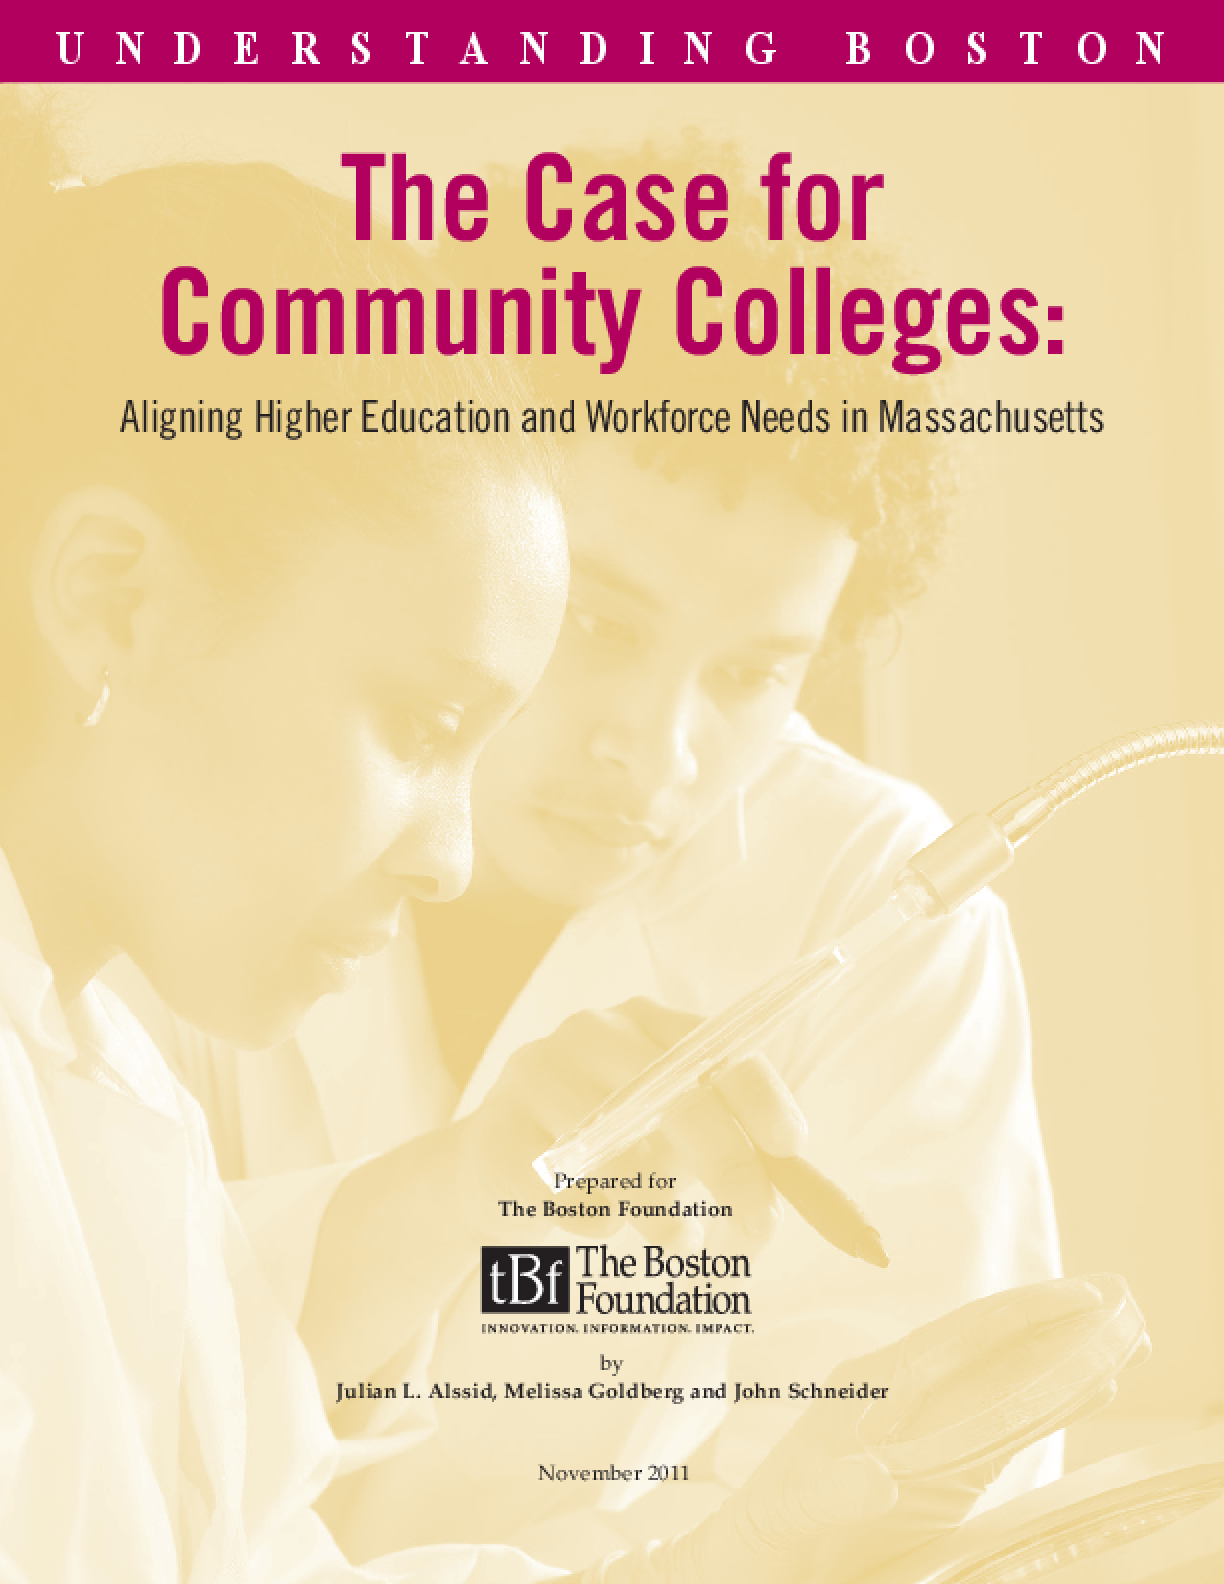 Case for Community Colleges: Aligning Higher Education and Workforce Needs in Massachusetts, The